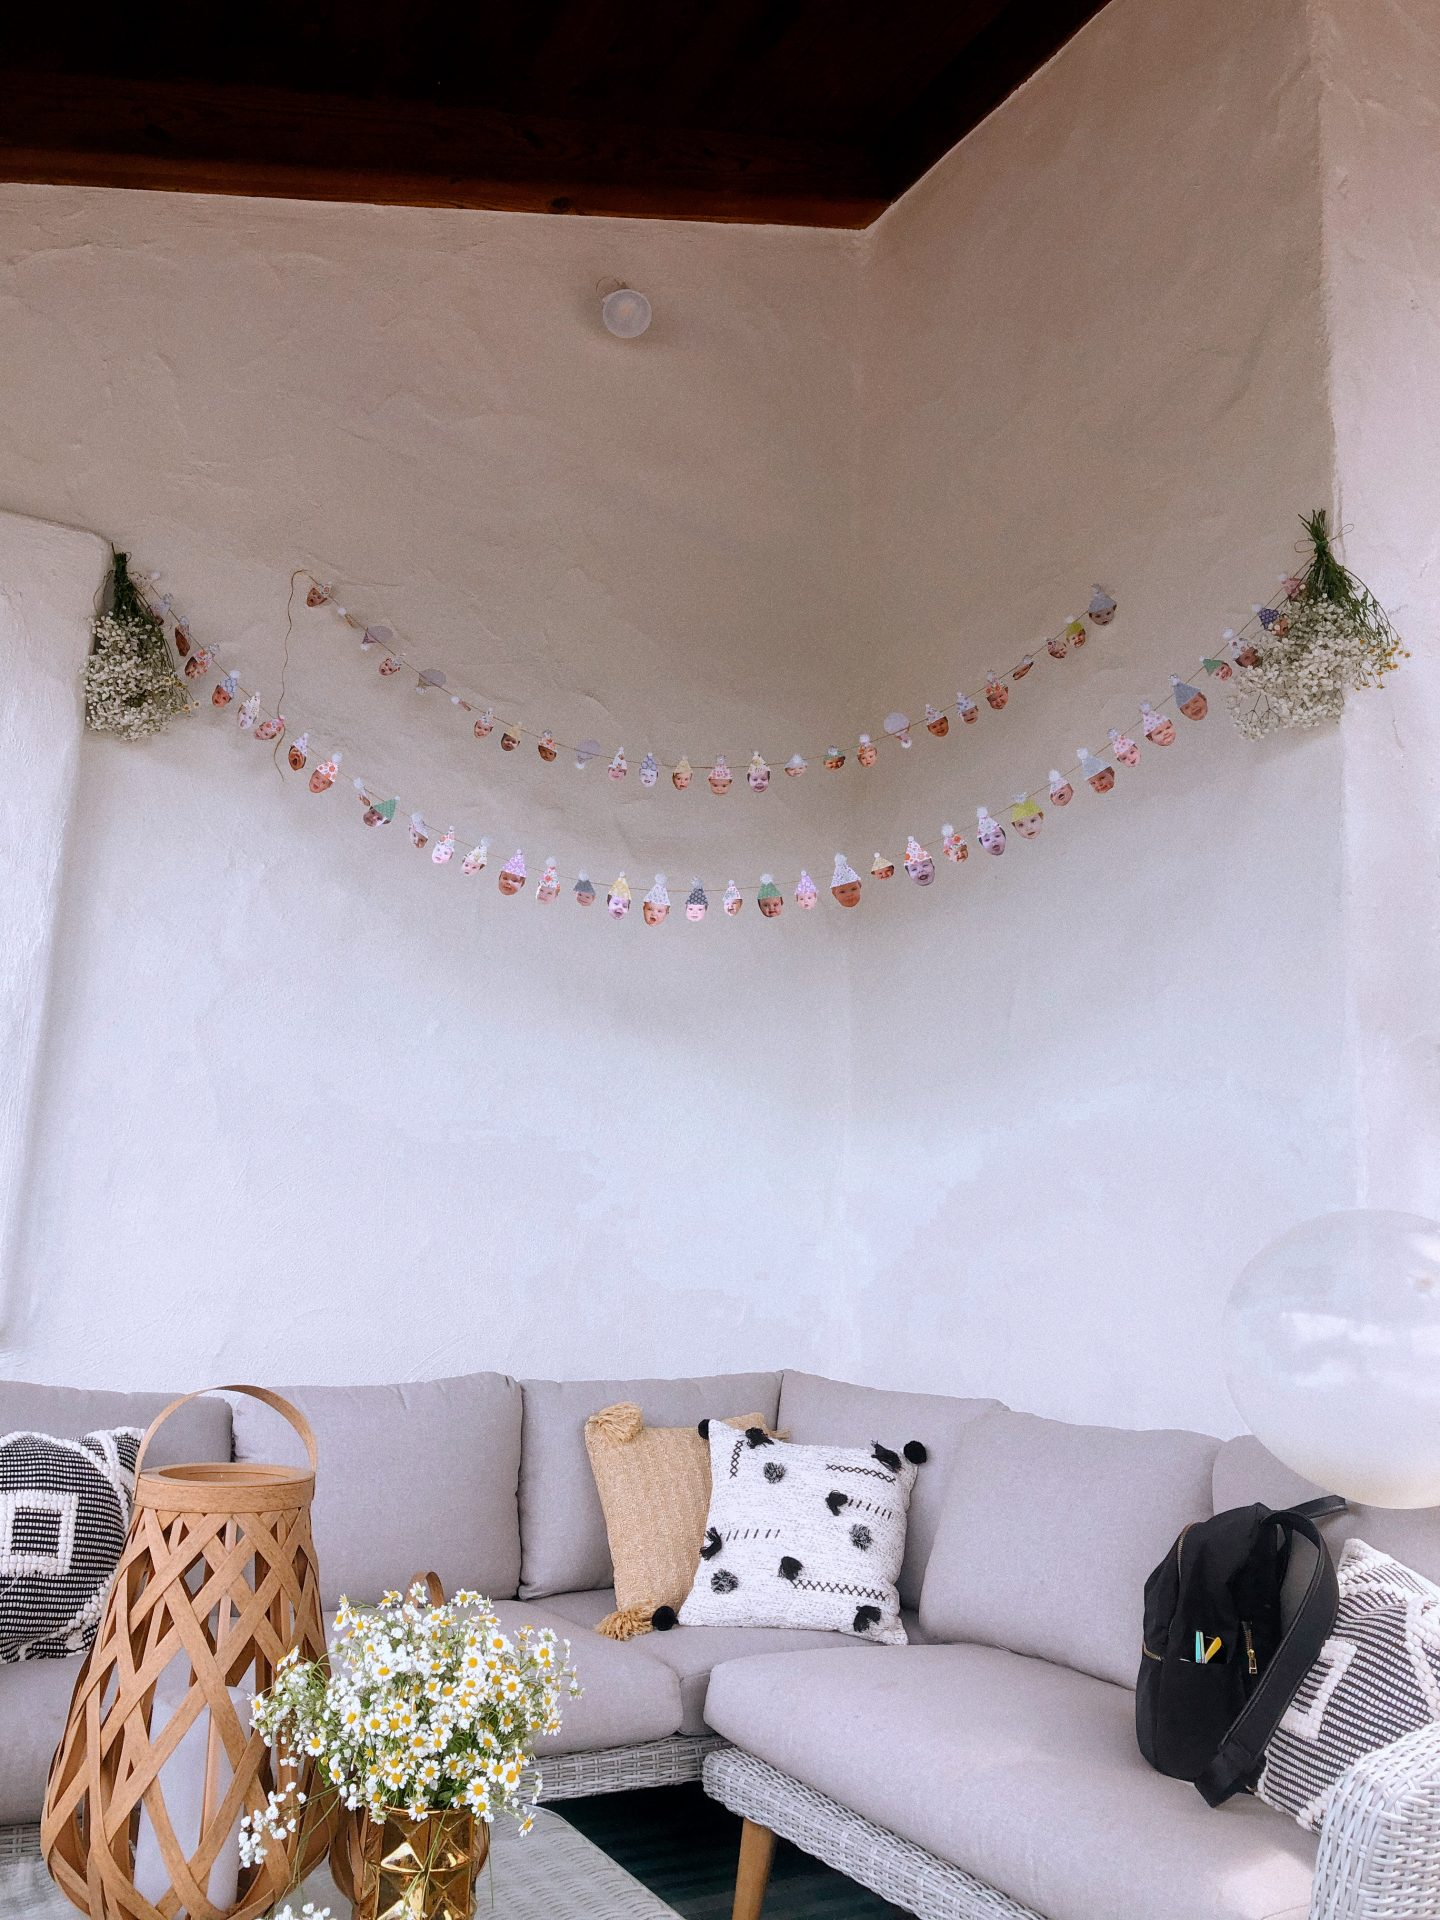 Daisy Theme Party by popular San Diego lifestyle blog, Navy Grace: image of a baby face and party hat craft paper and pom-pom garland hanging above a outdoor grey sectional couch.